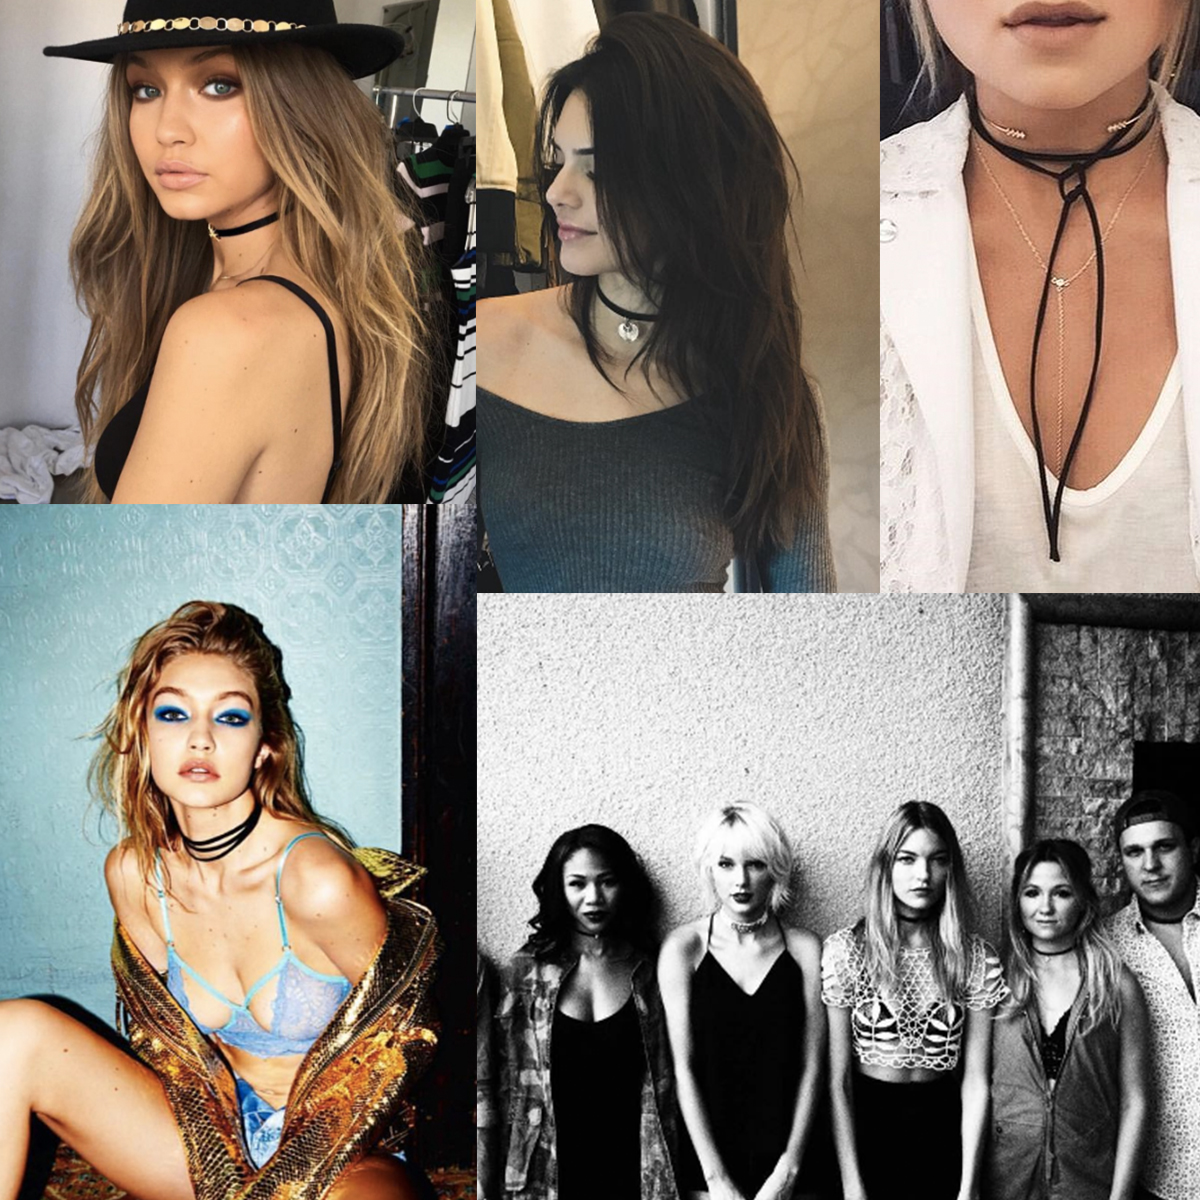 Gigi Hadid, Kendall Jenner and Taylor Swift show their chokers via Insta <3